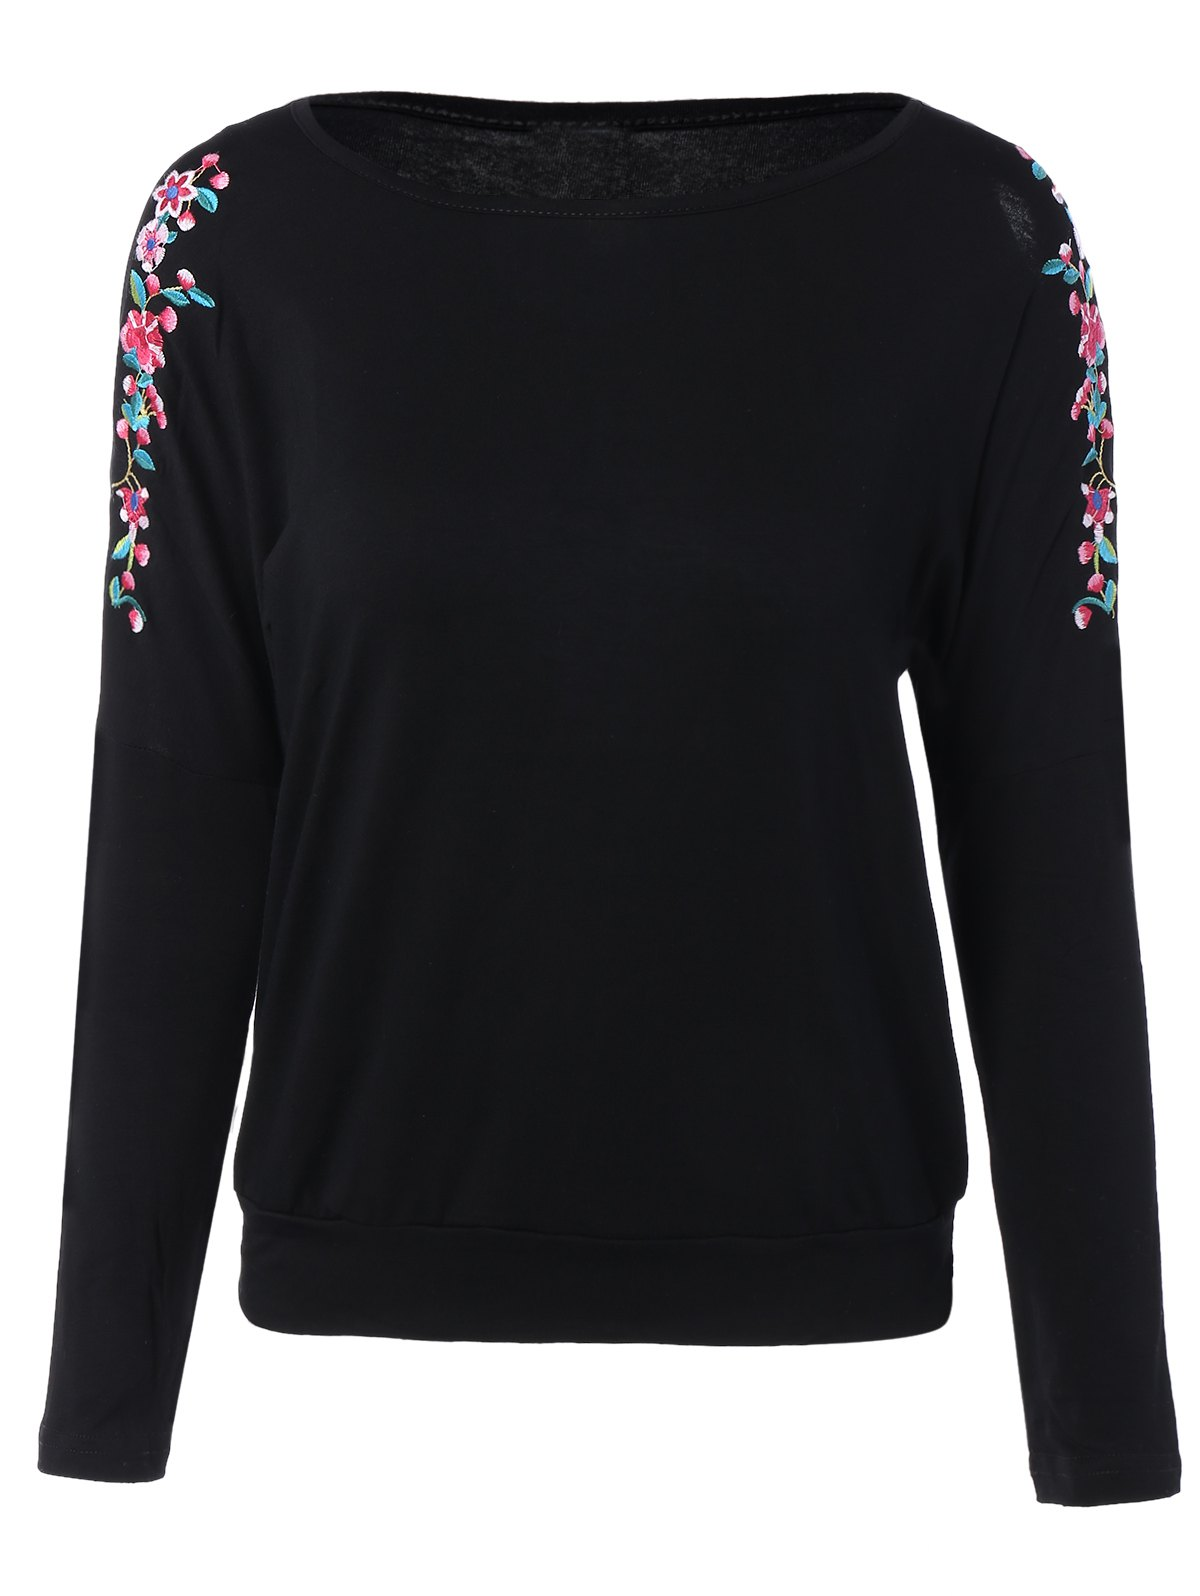 a3ebb2956c 2019 Floral Embroidered Cut Out Shoulder Long Sleeve Top | Rosegal.com